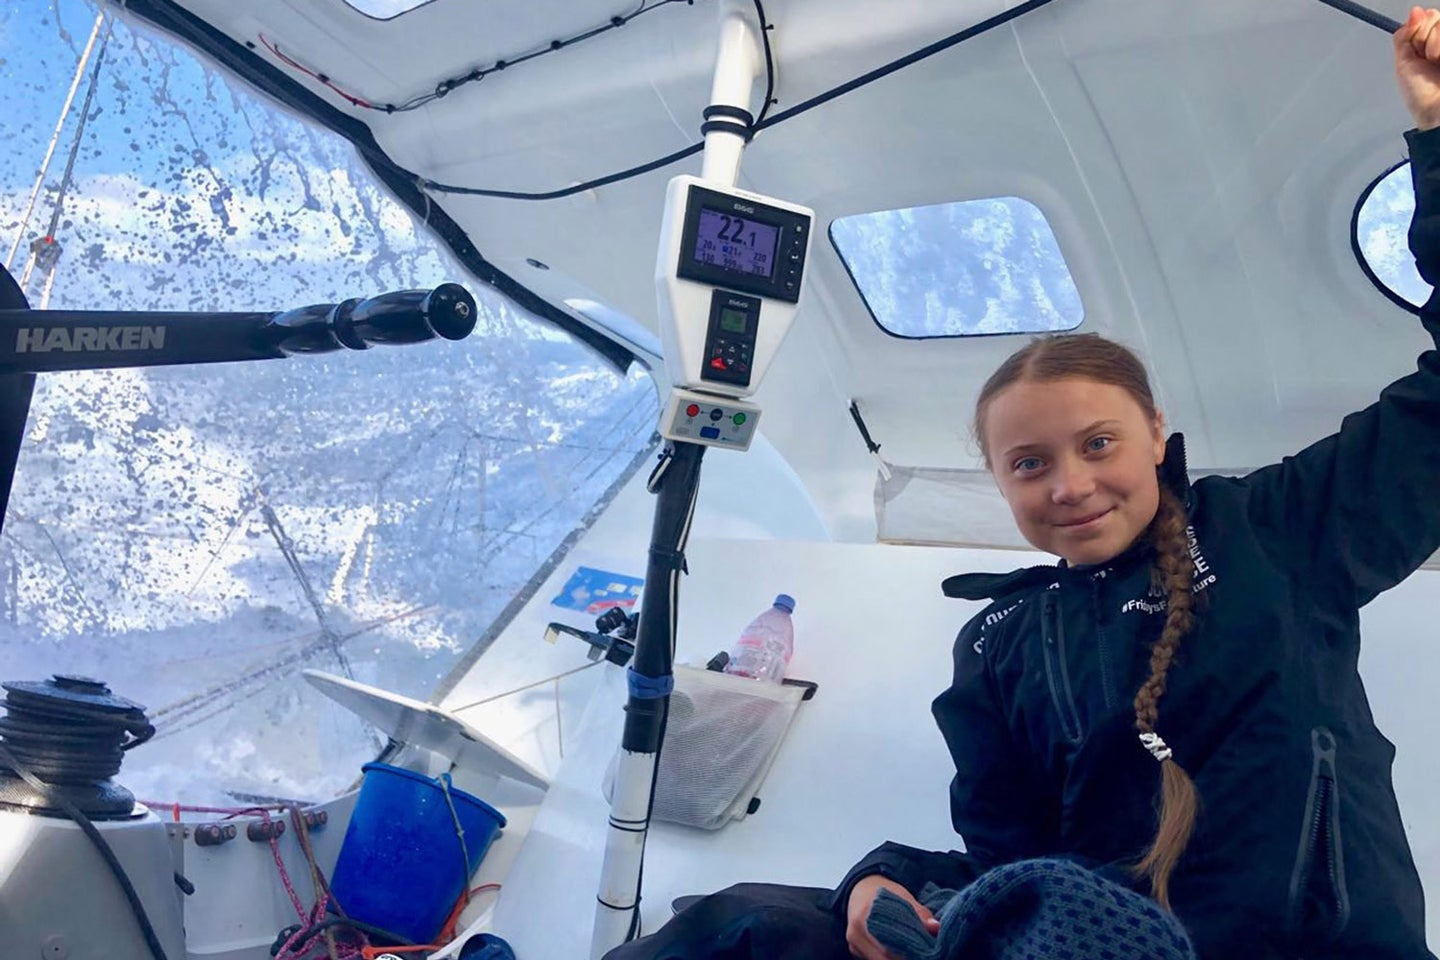 Greta Thunberg crossed the ocean on a carbon-free sailboat. Can we do it too?